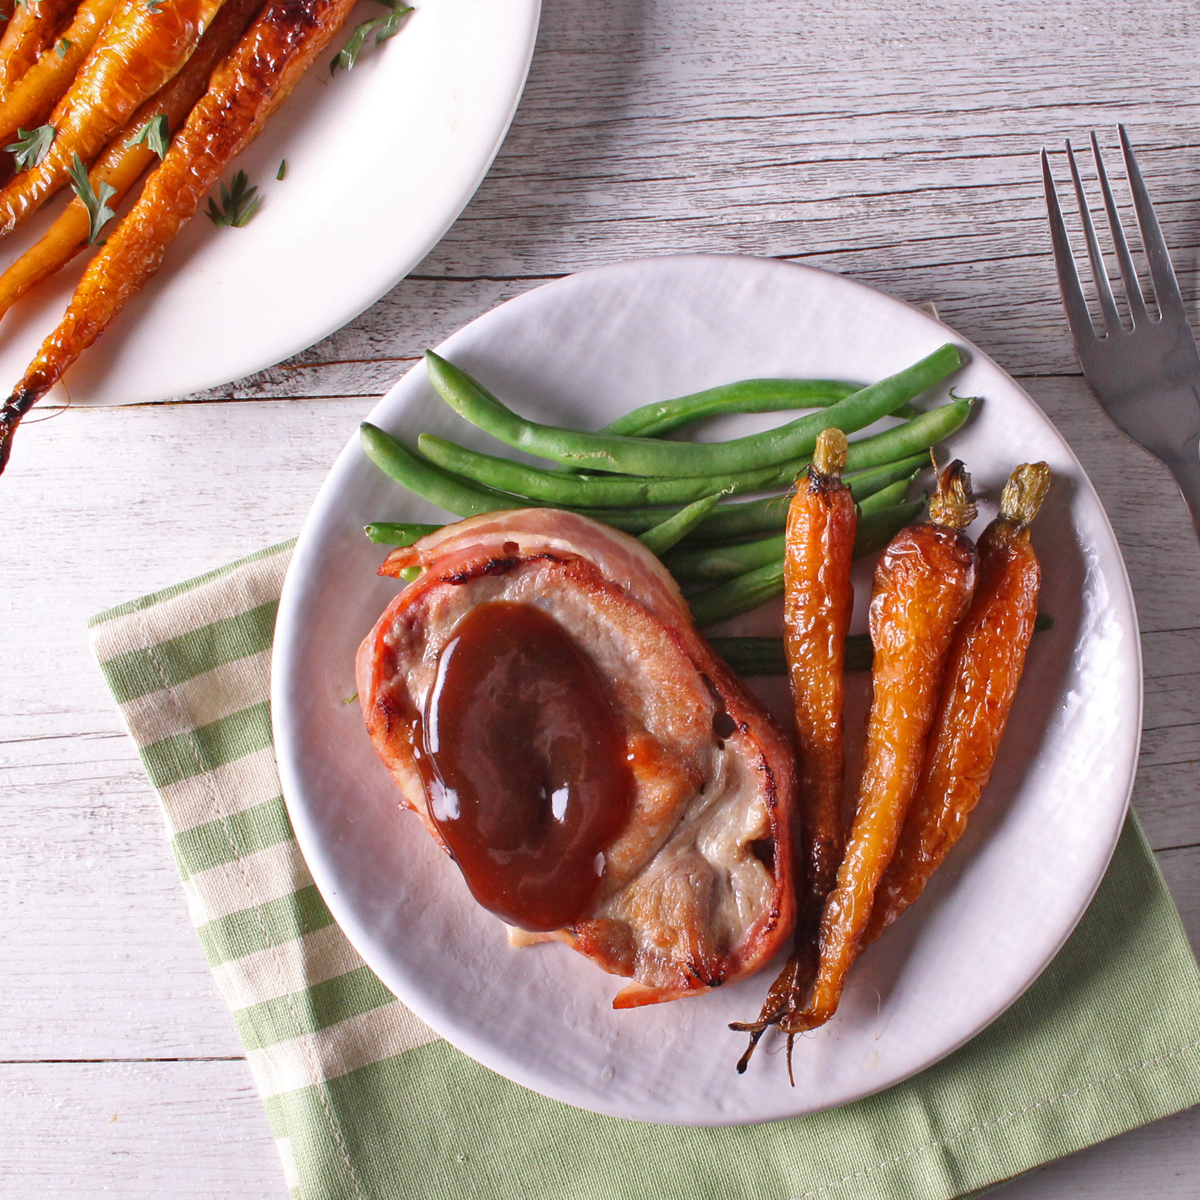 BBQ Pork Fillet Mignon with Roasted Dutch Carrots - Loin steak